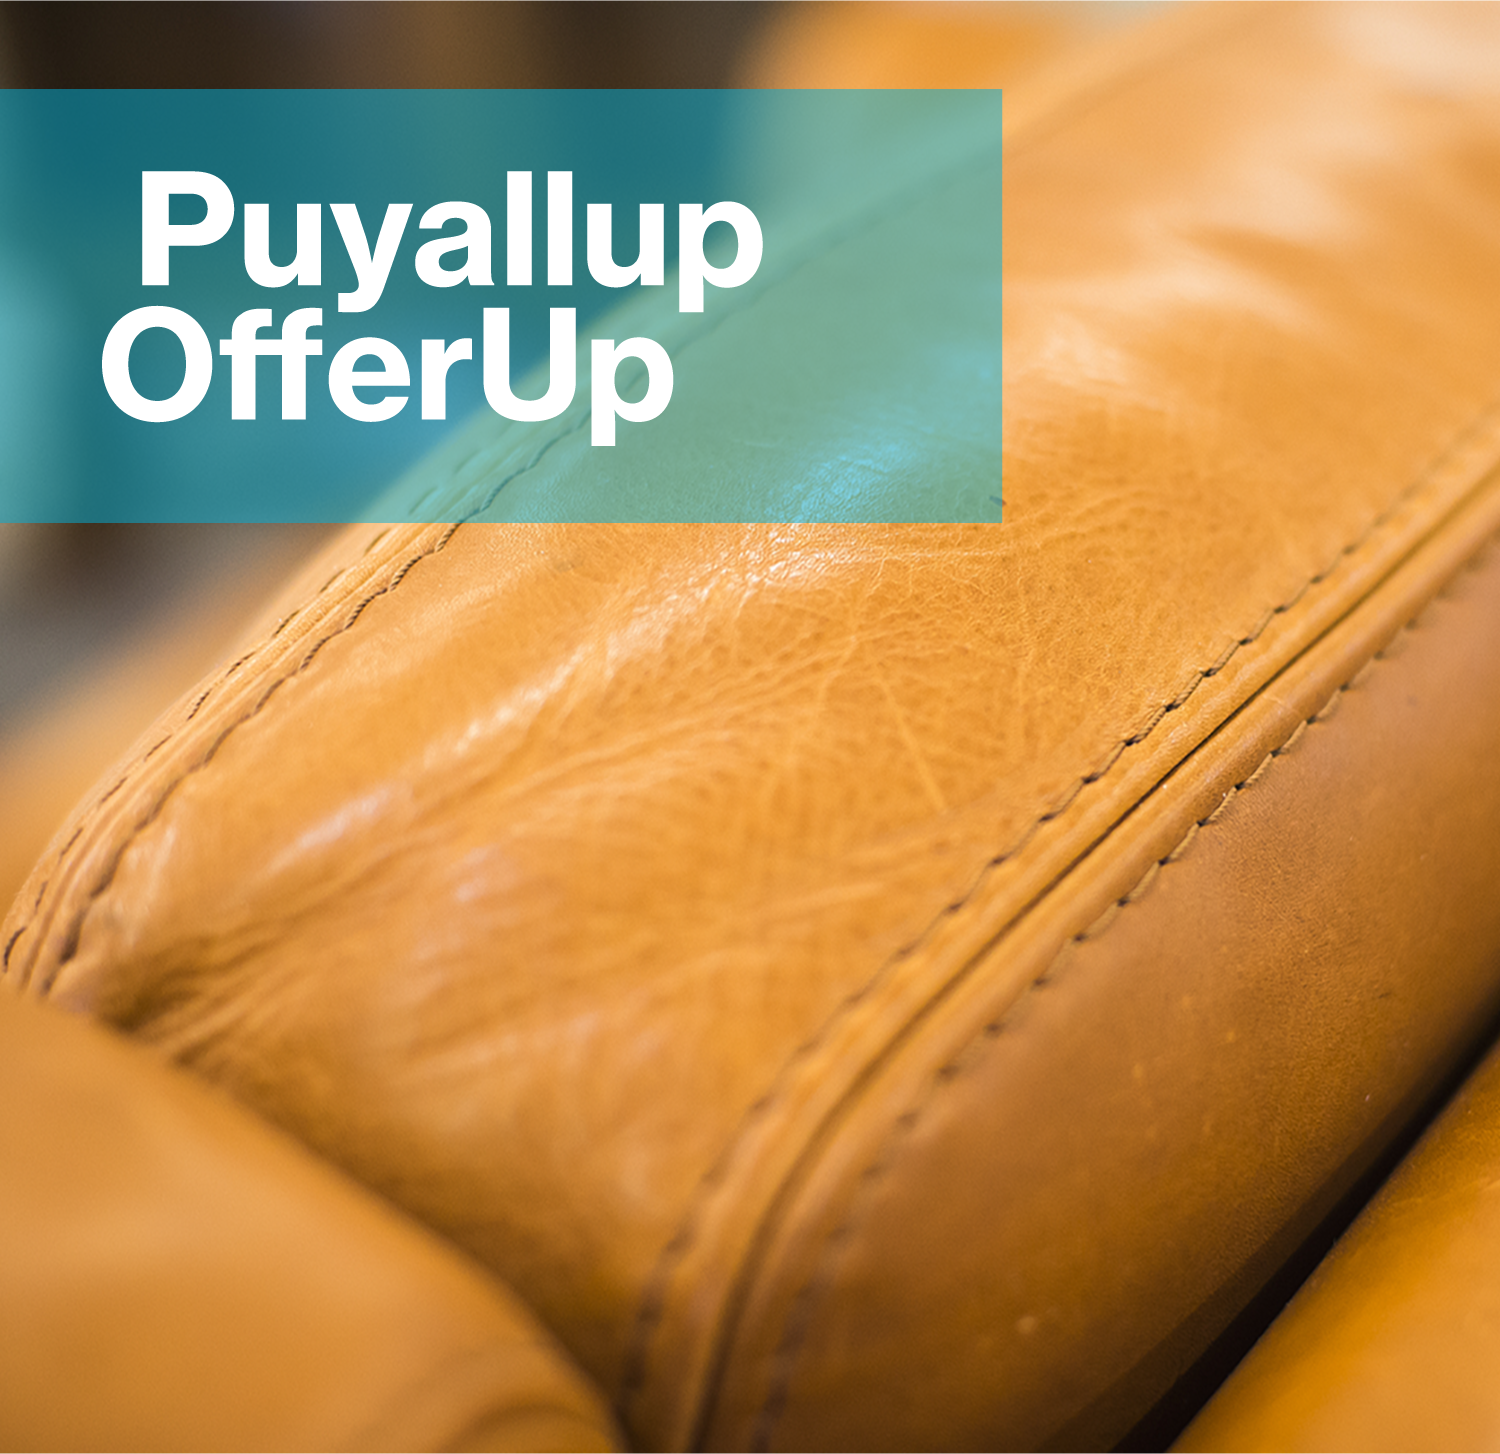 Puyallup OfferUp